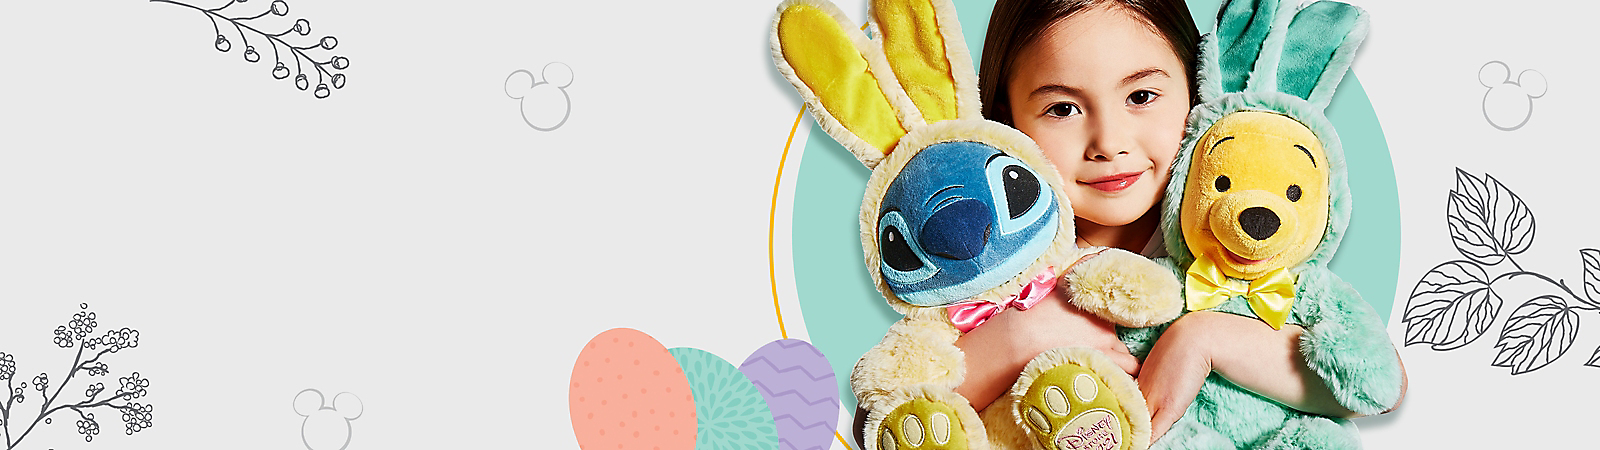 Background image of $15 Easter Bunny Plush